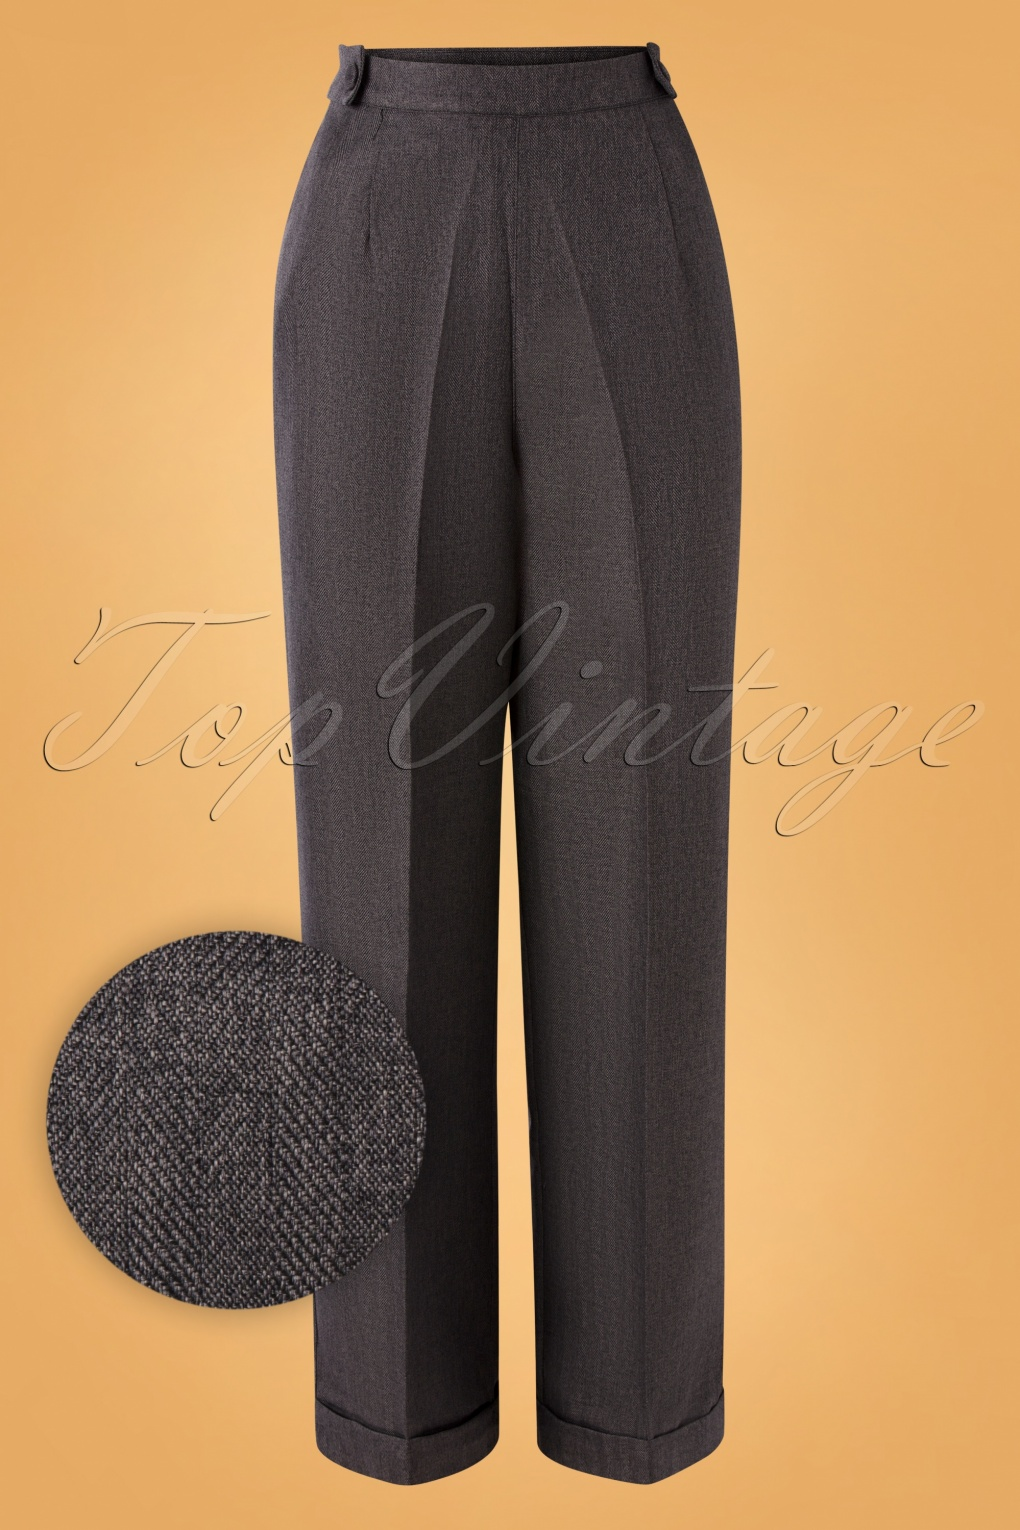 Vintage High Waisted Trousers, Sailor Pants, Jeans 40s Work It Out Trousers in Grey £41.07 AT vintagedancer.com